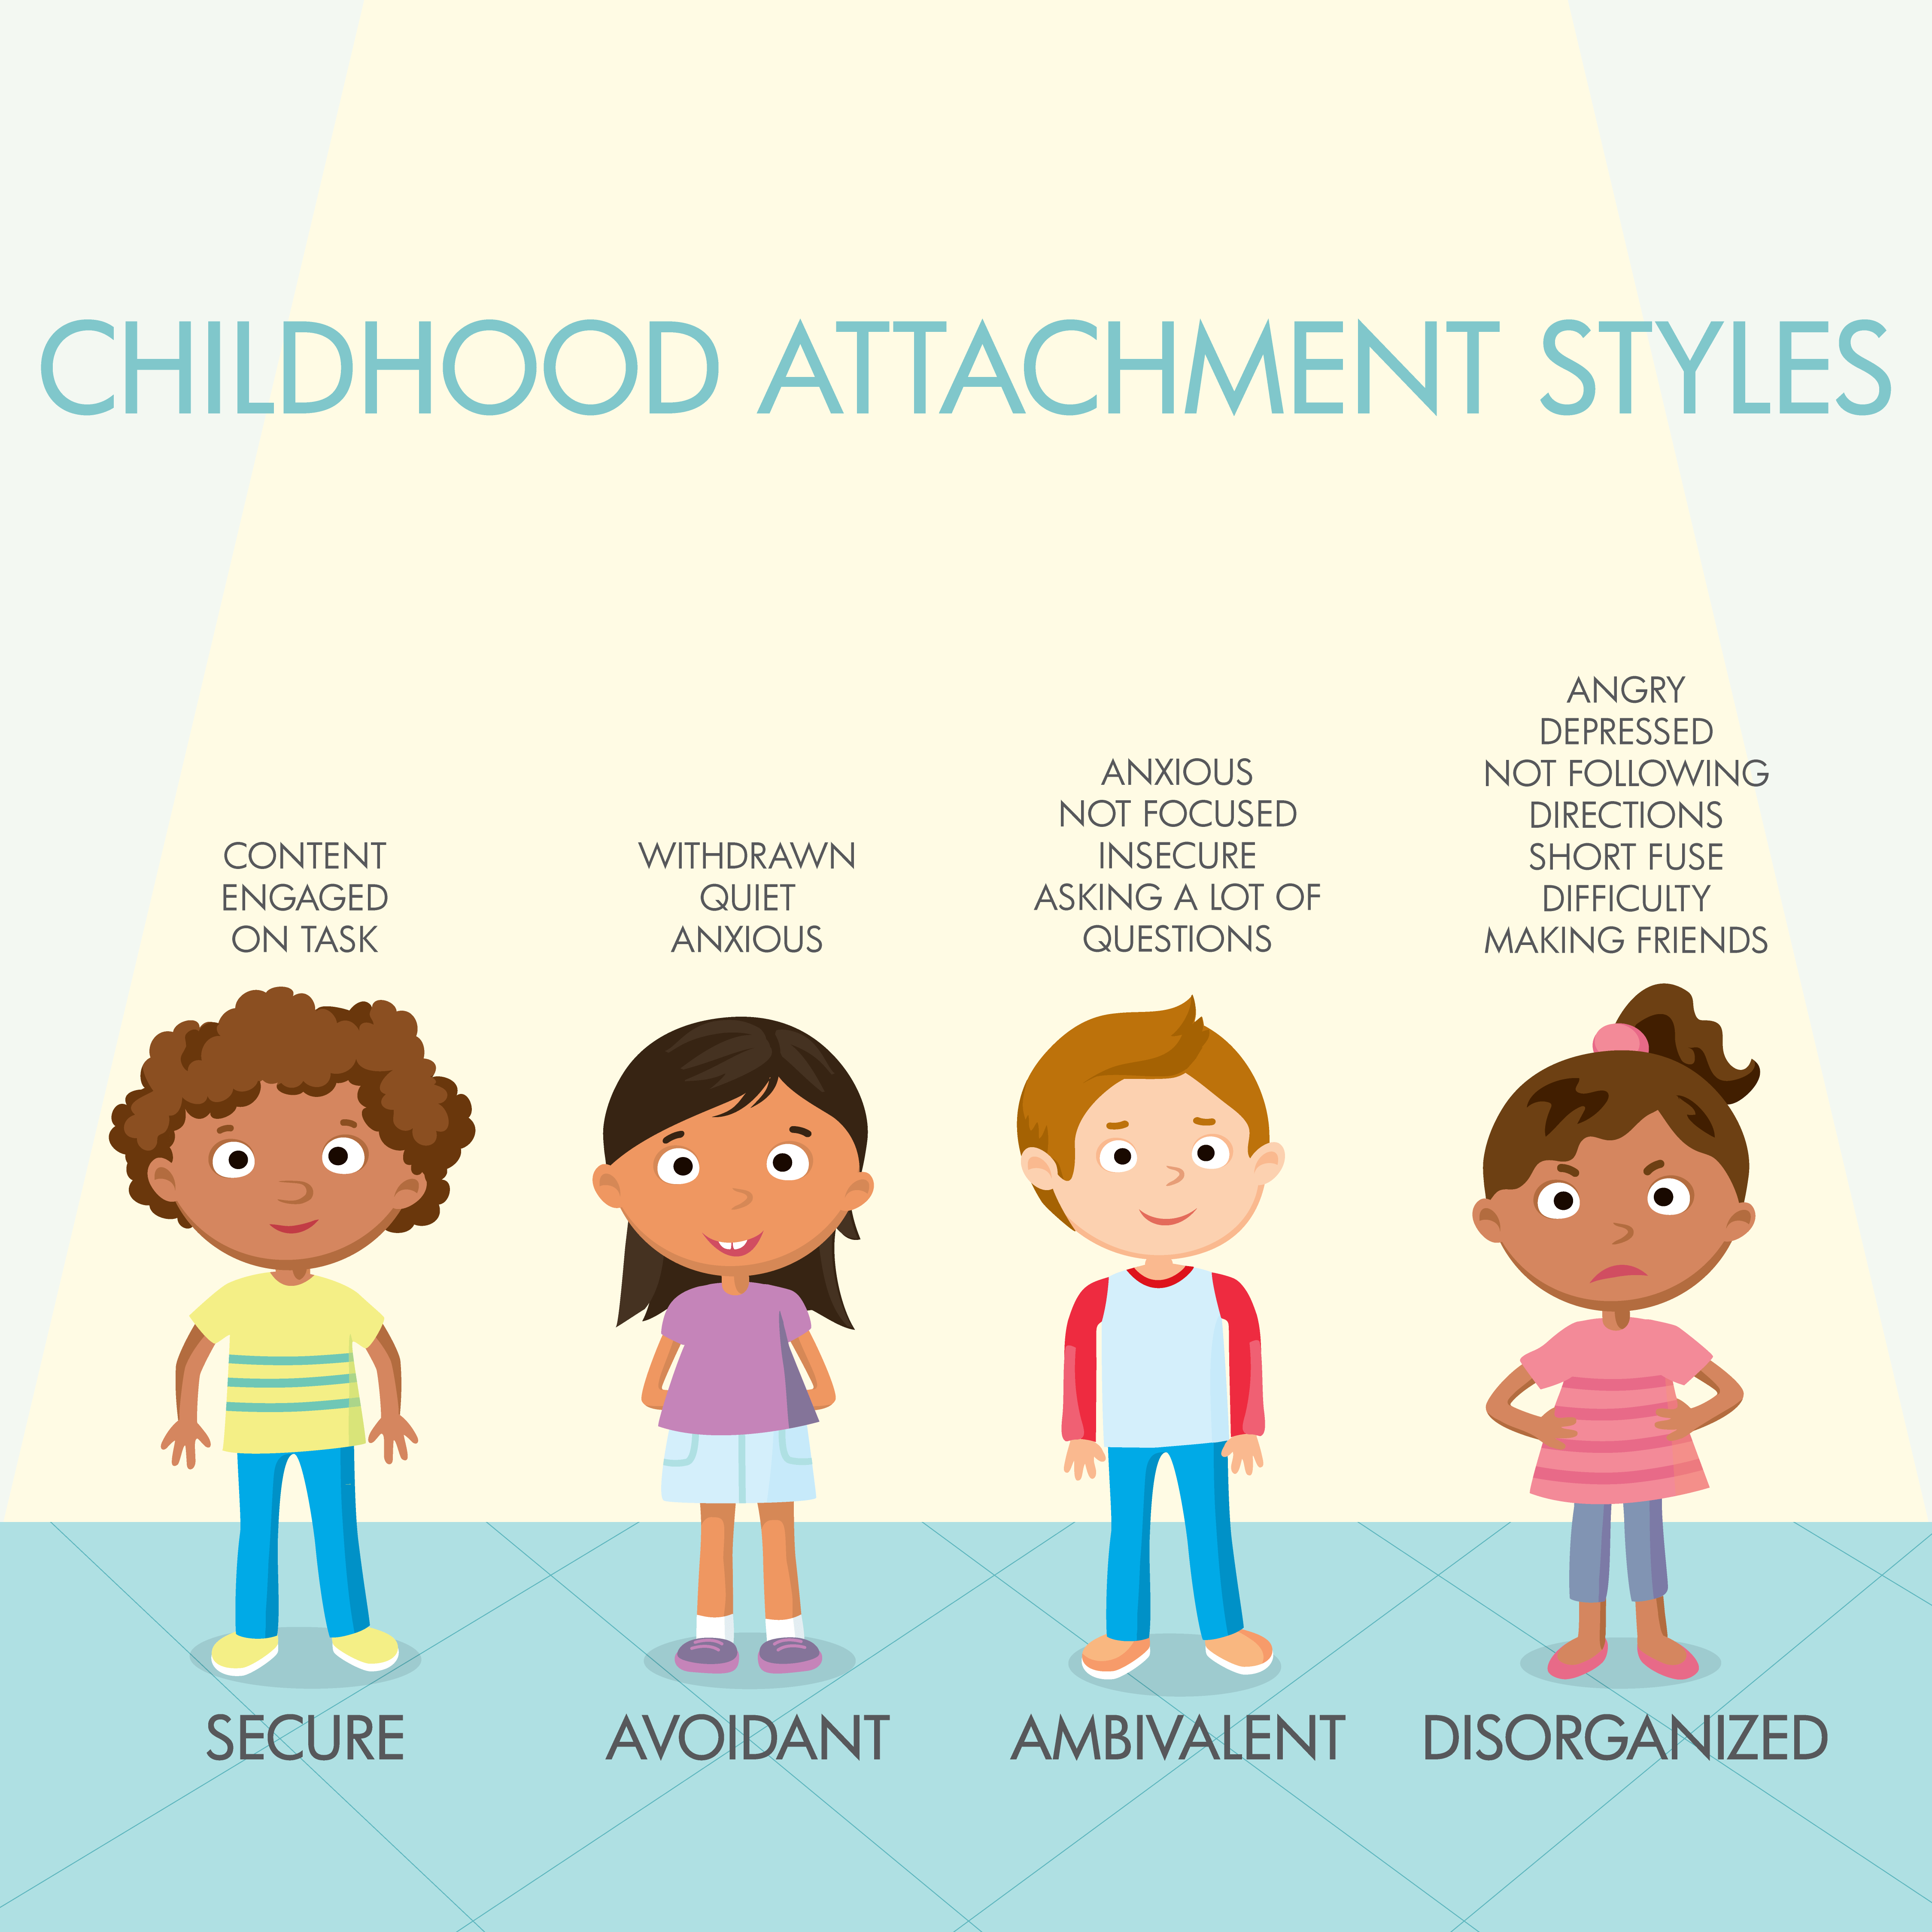 How Our Own Attachment Style Impacts Our Relationships